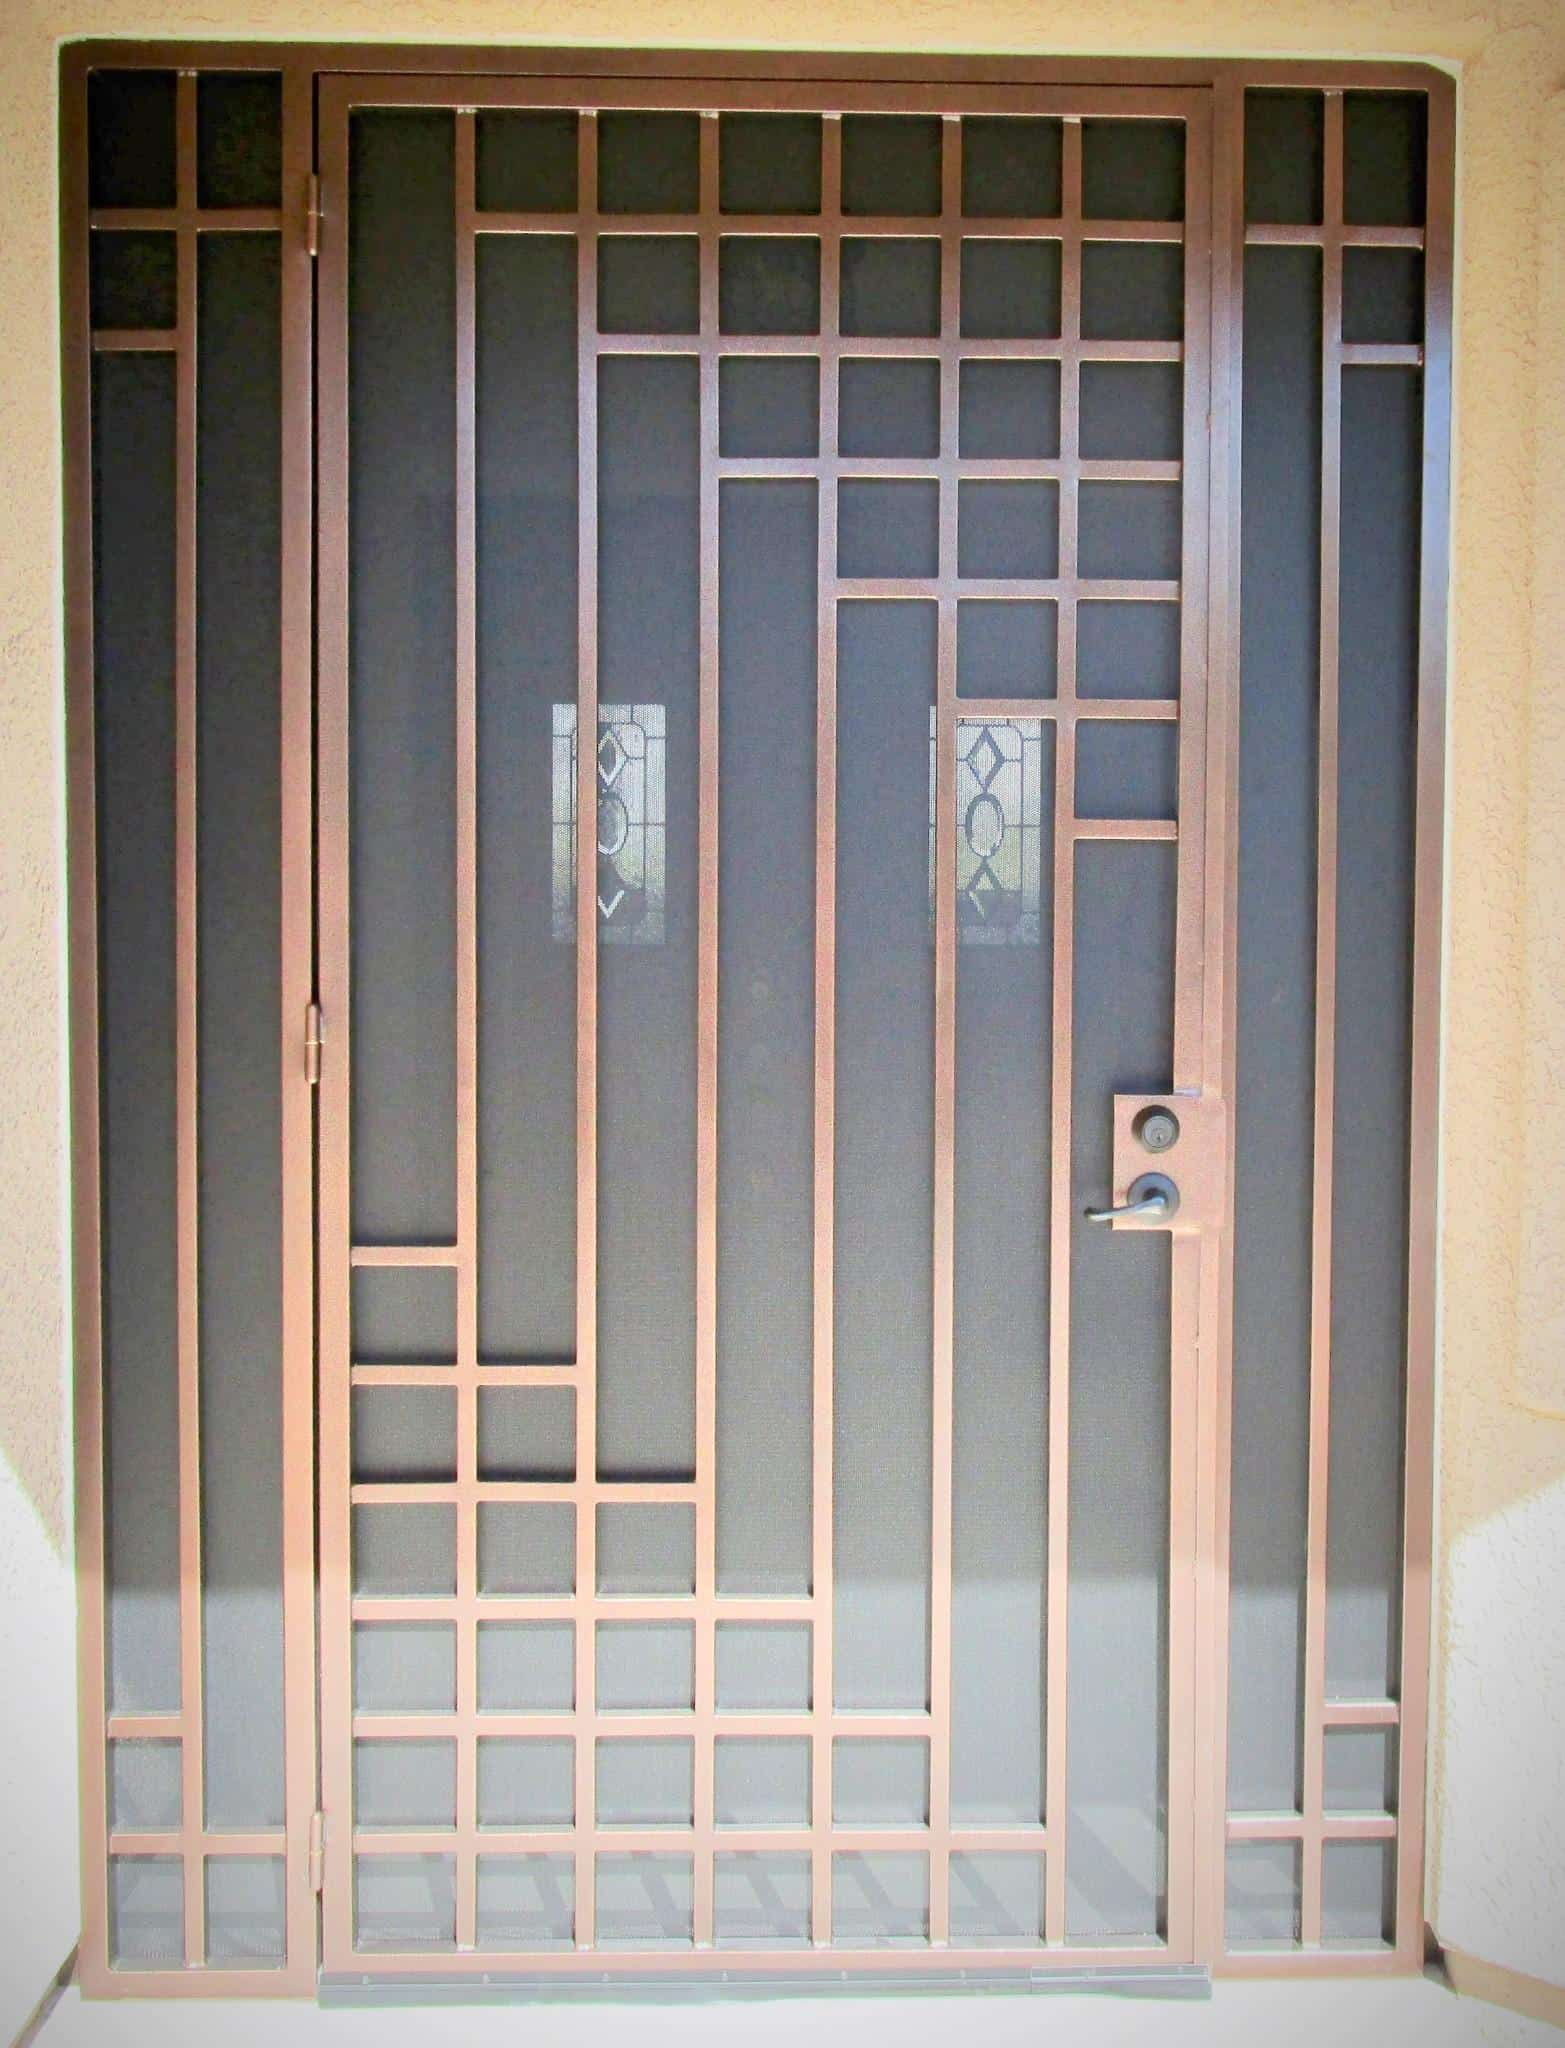 Porch enclosure and security door with geometric motif E711